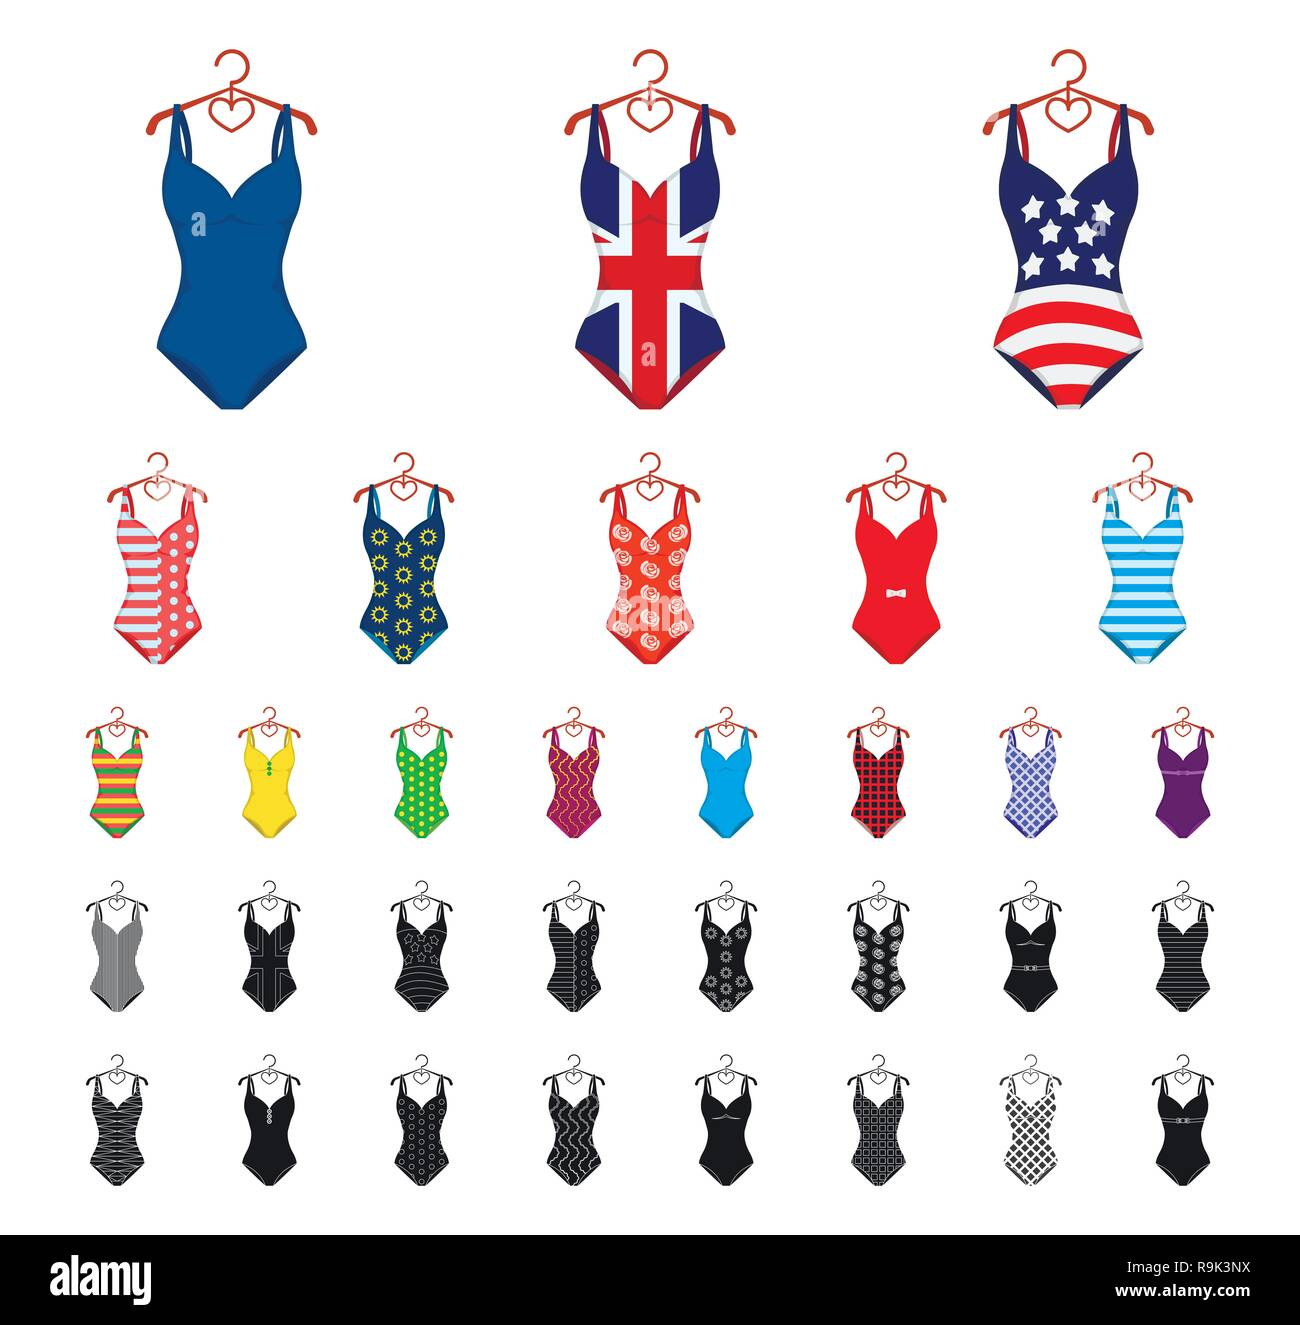 d3bcf60567 Swimsuits Stock Vector Images - Alamy